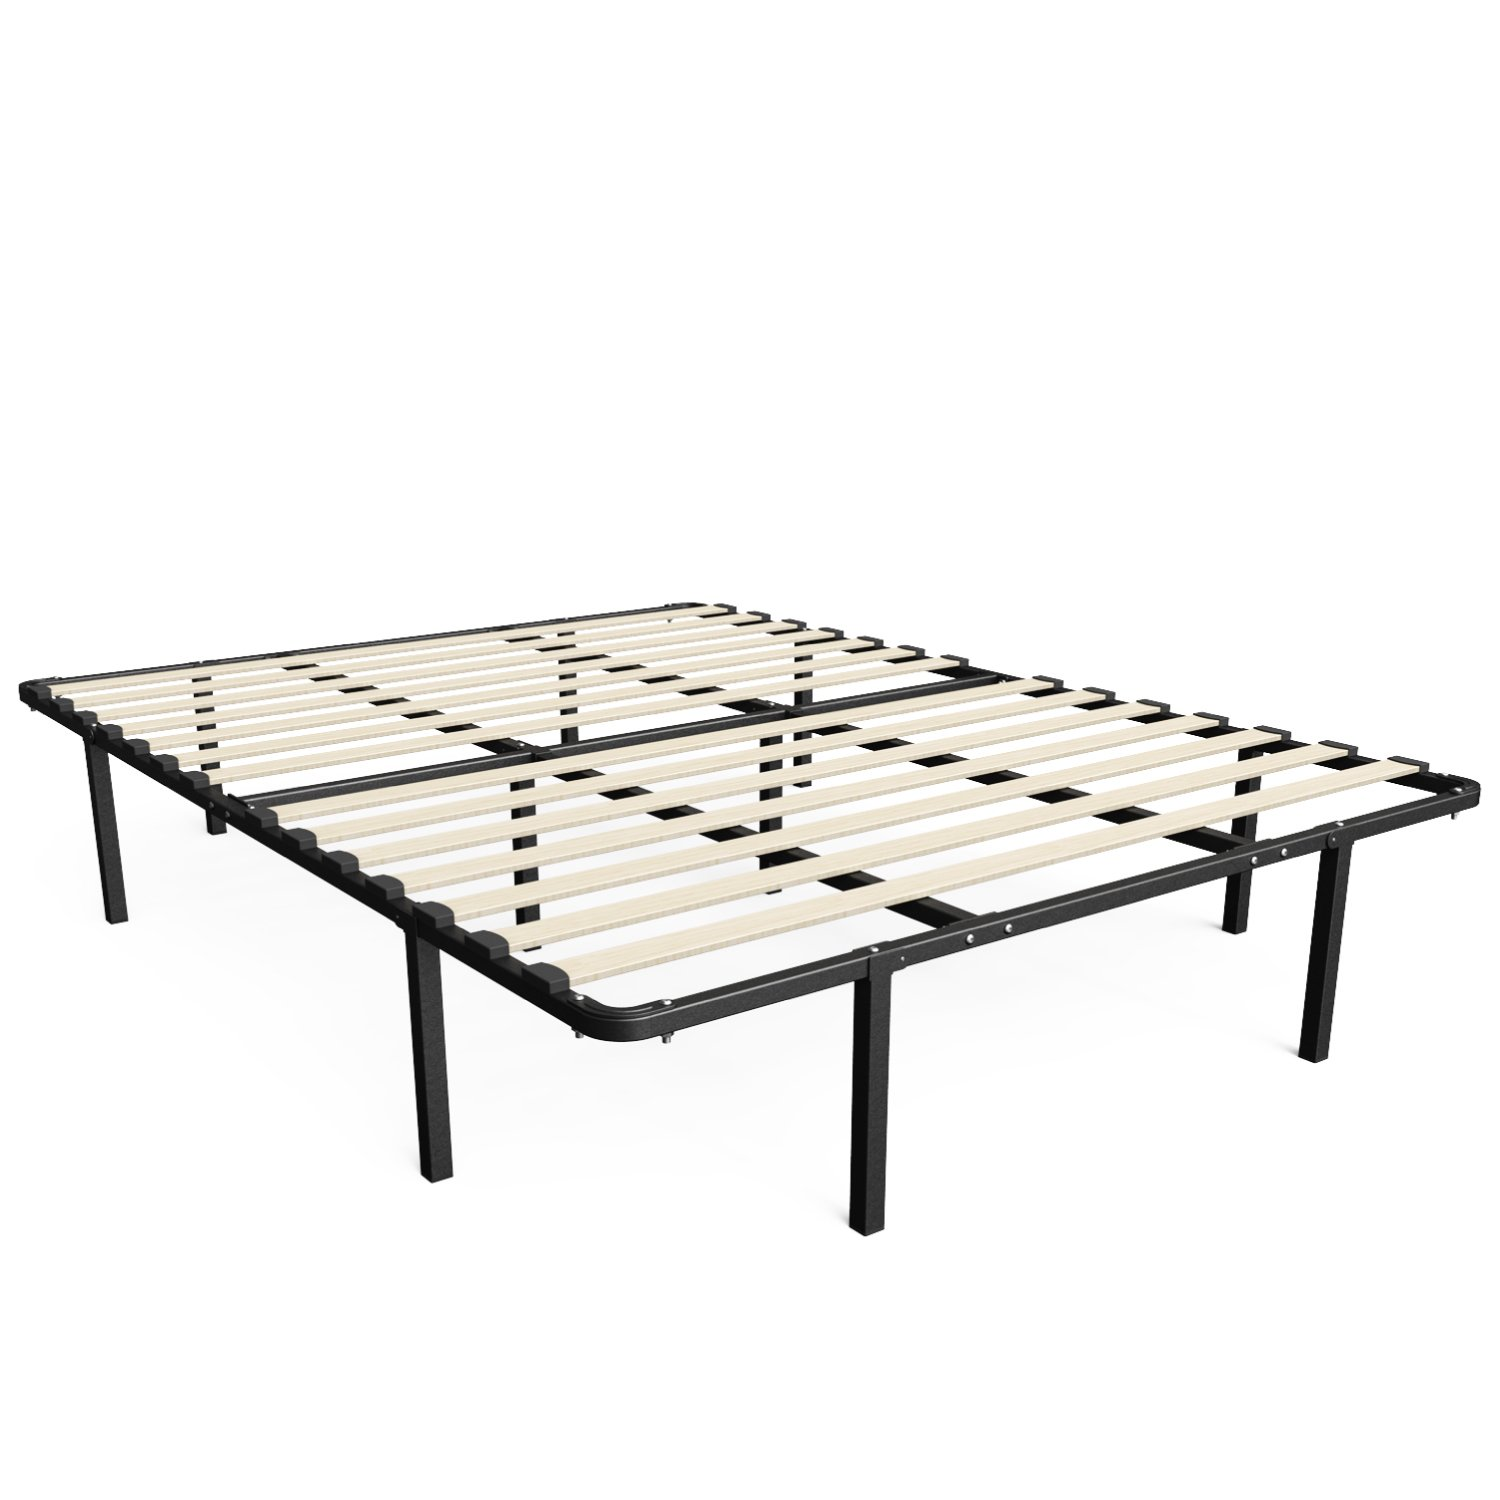 zinus 14 inch myeuro smartbase wooden slat mattress foundation platform bed frame box spring replacement queen - Bed Frames Queen